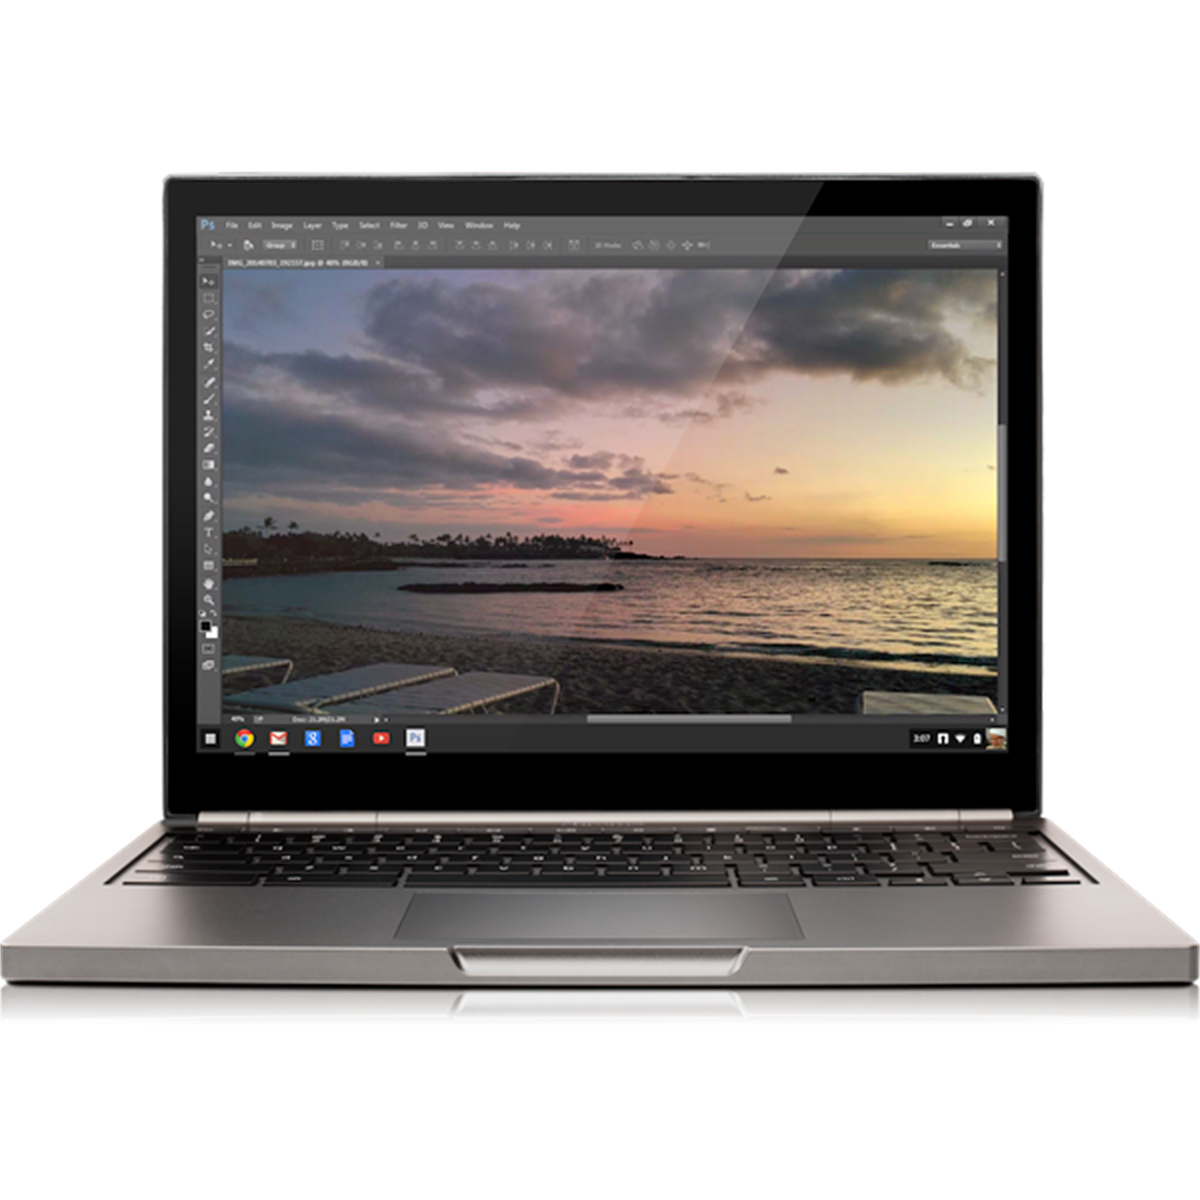 Photoshop comes to Chrome OS in limited beta: Digital Photography Review